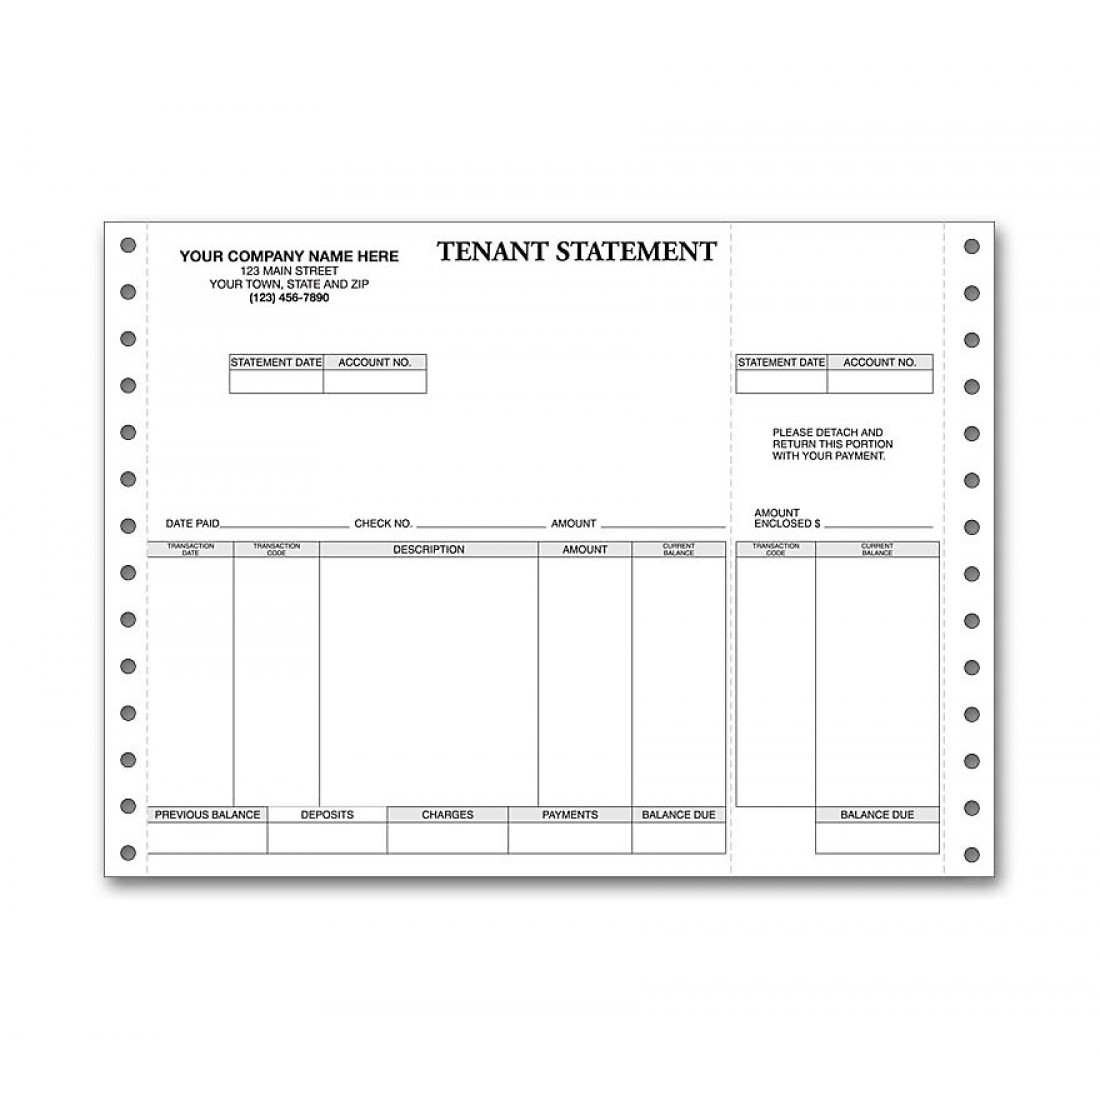 Continuous Tenant Statement